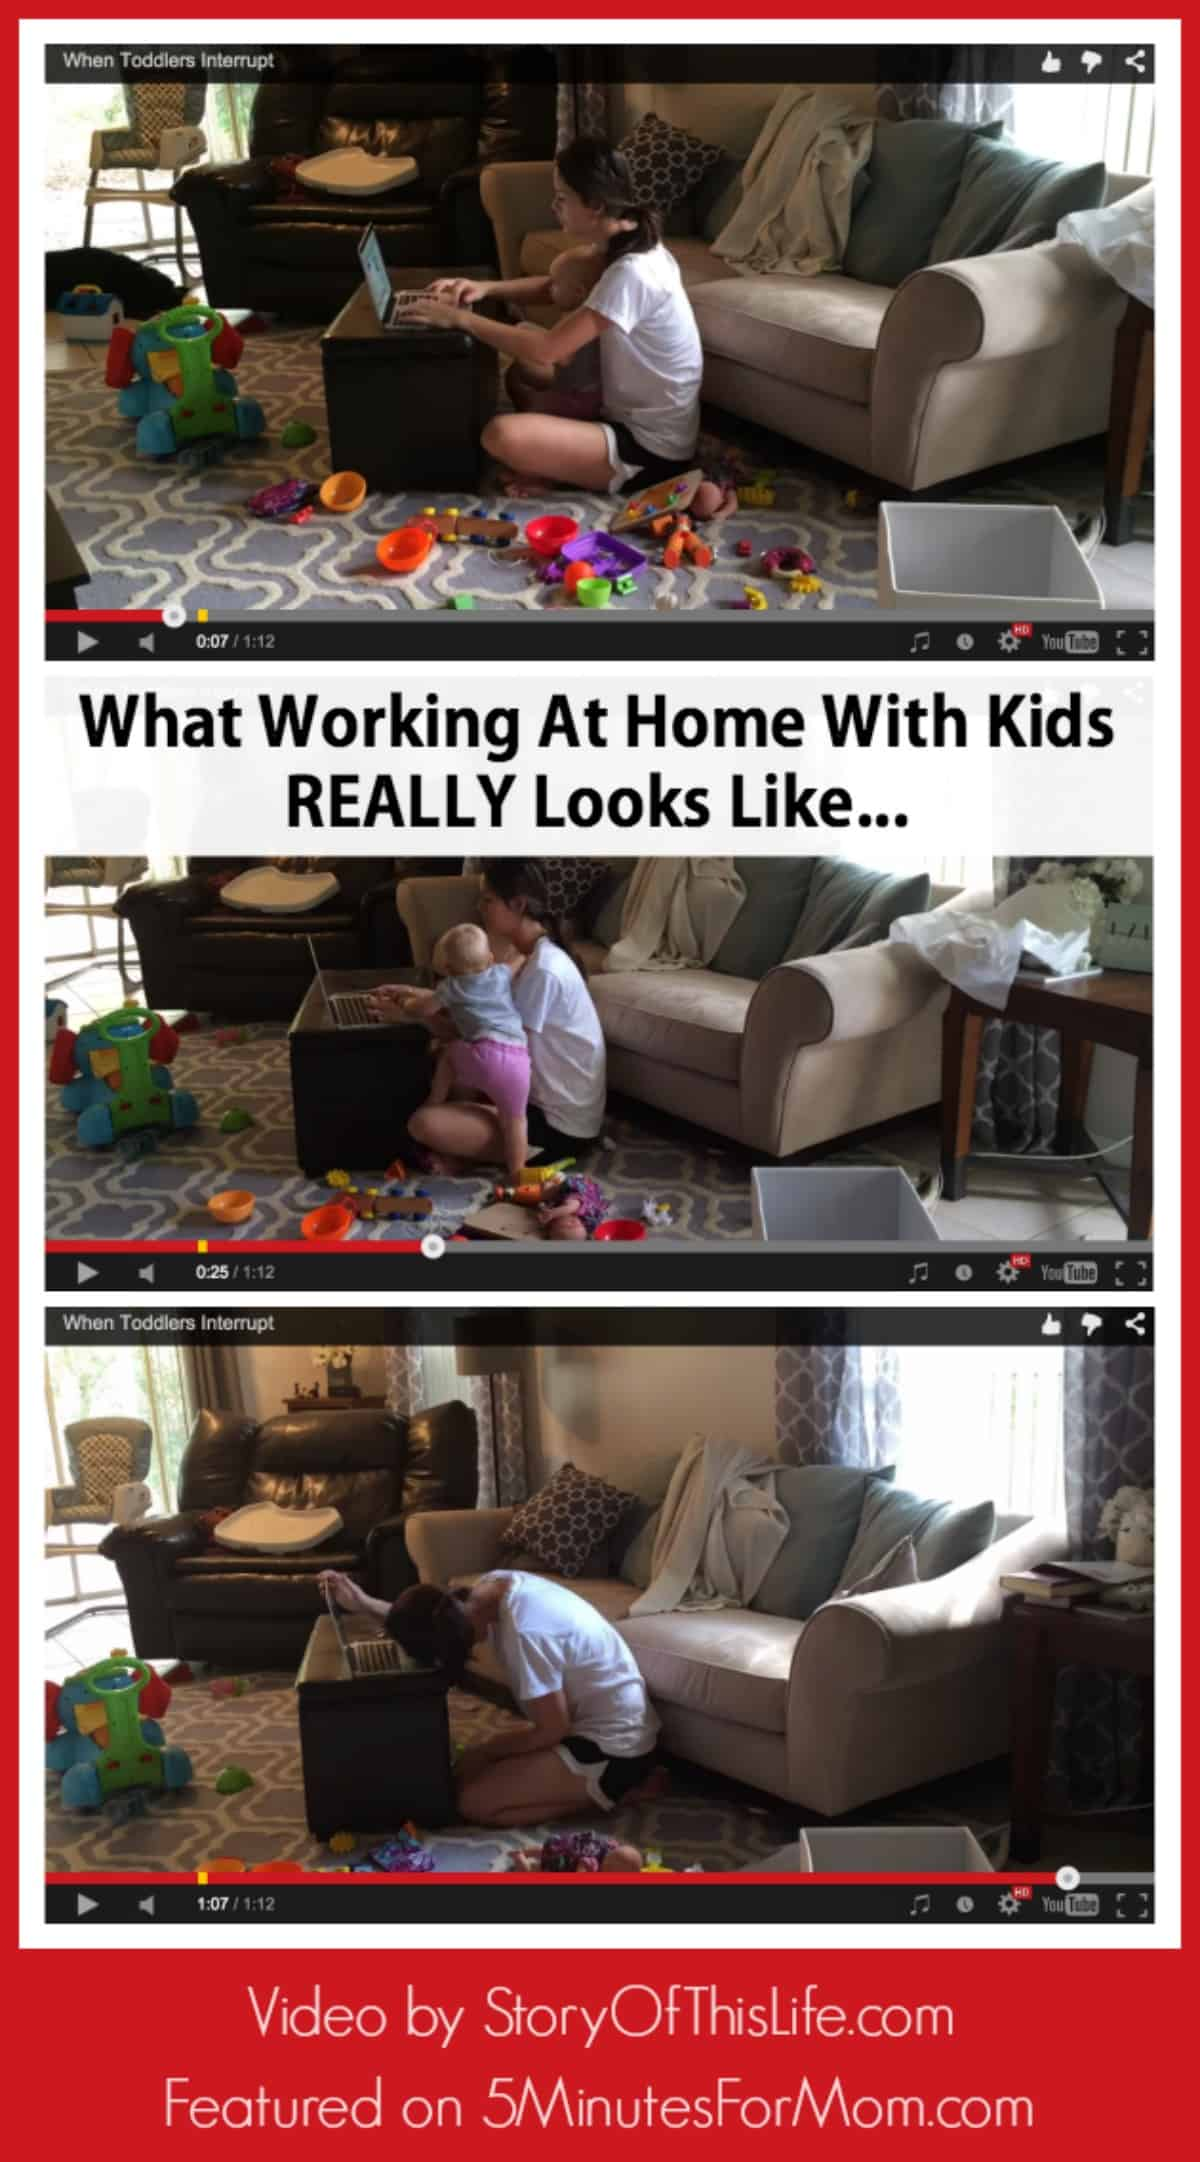 What Working At Home With Kids Really Looks Like